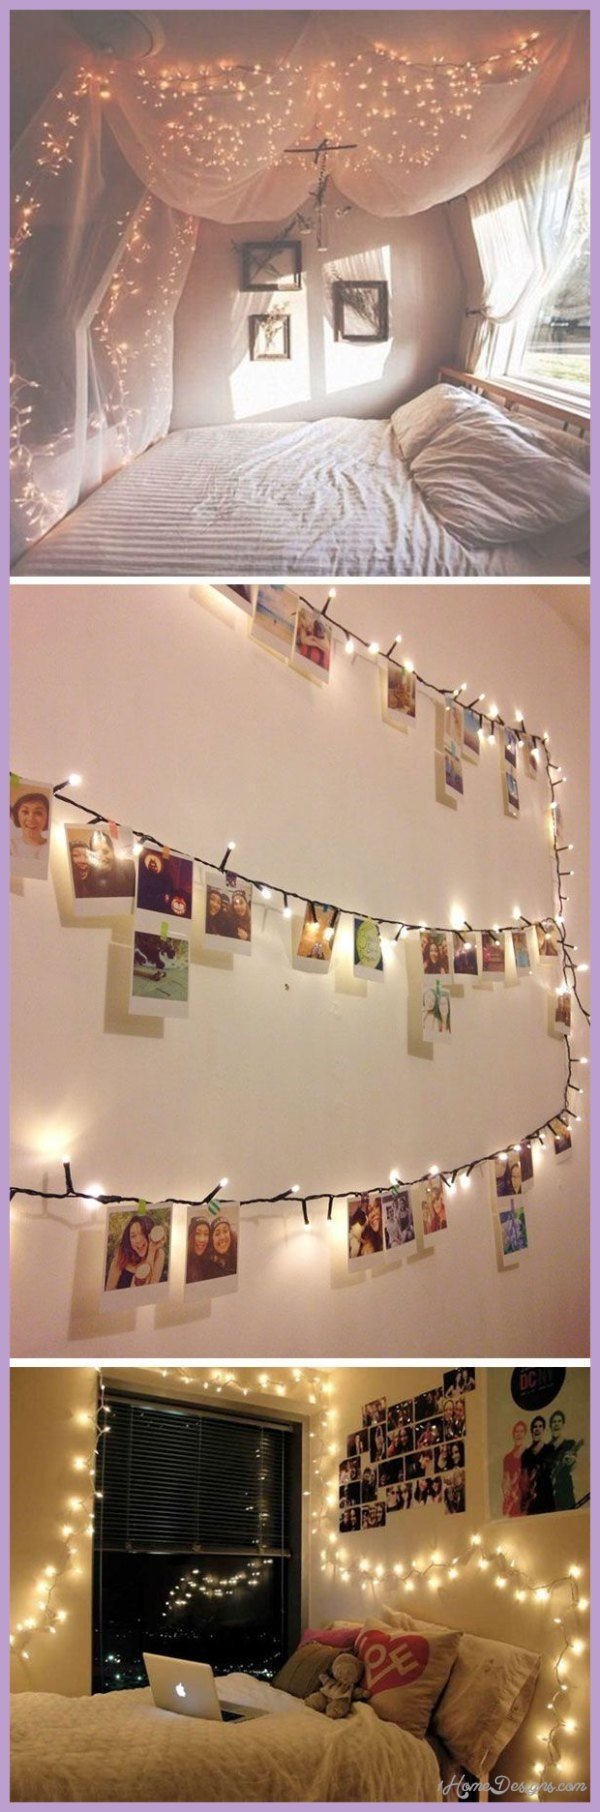 Best Pinterest Home Decor Ideas Diy 1Homedesigns Com With Pictures